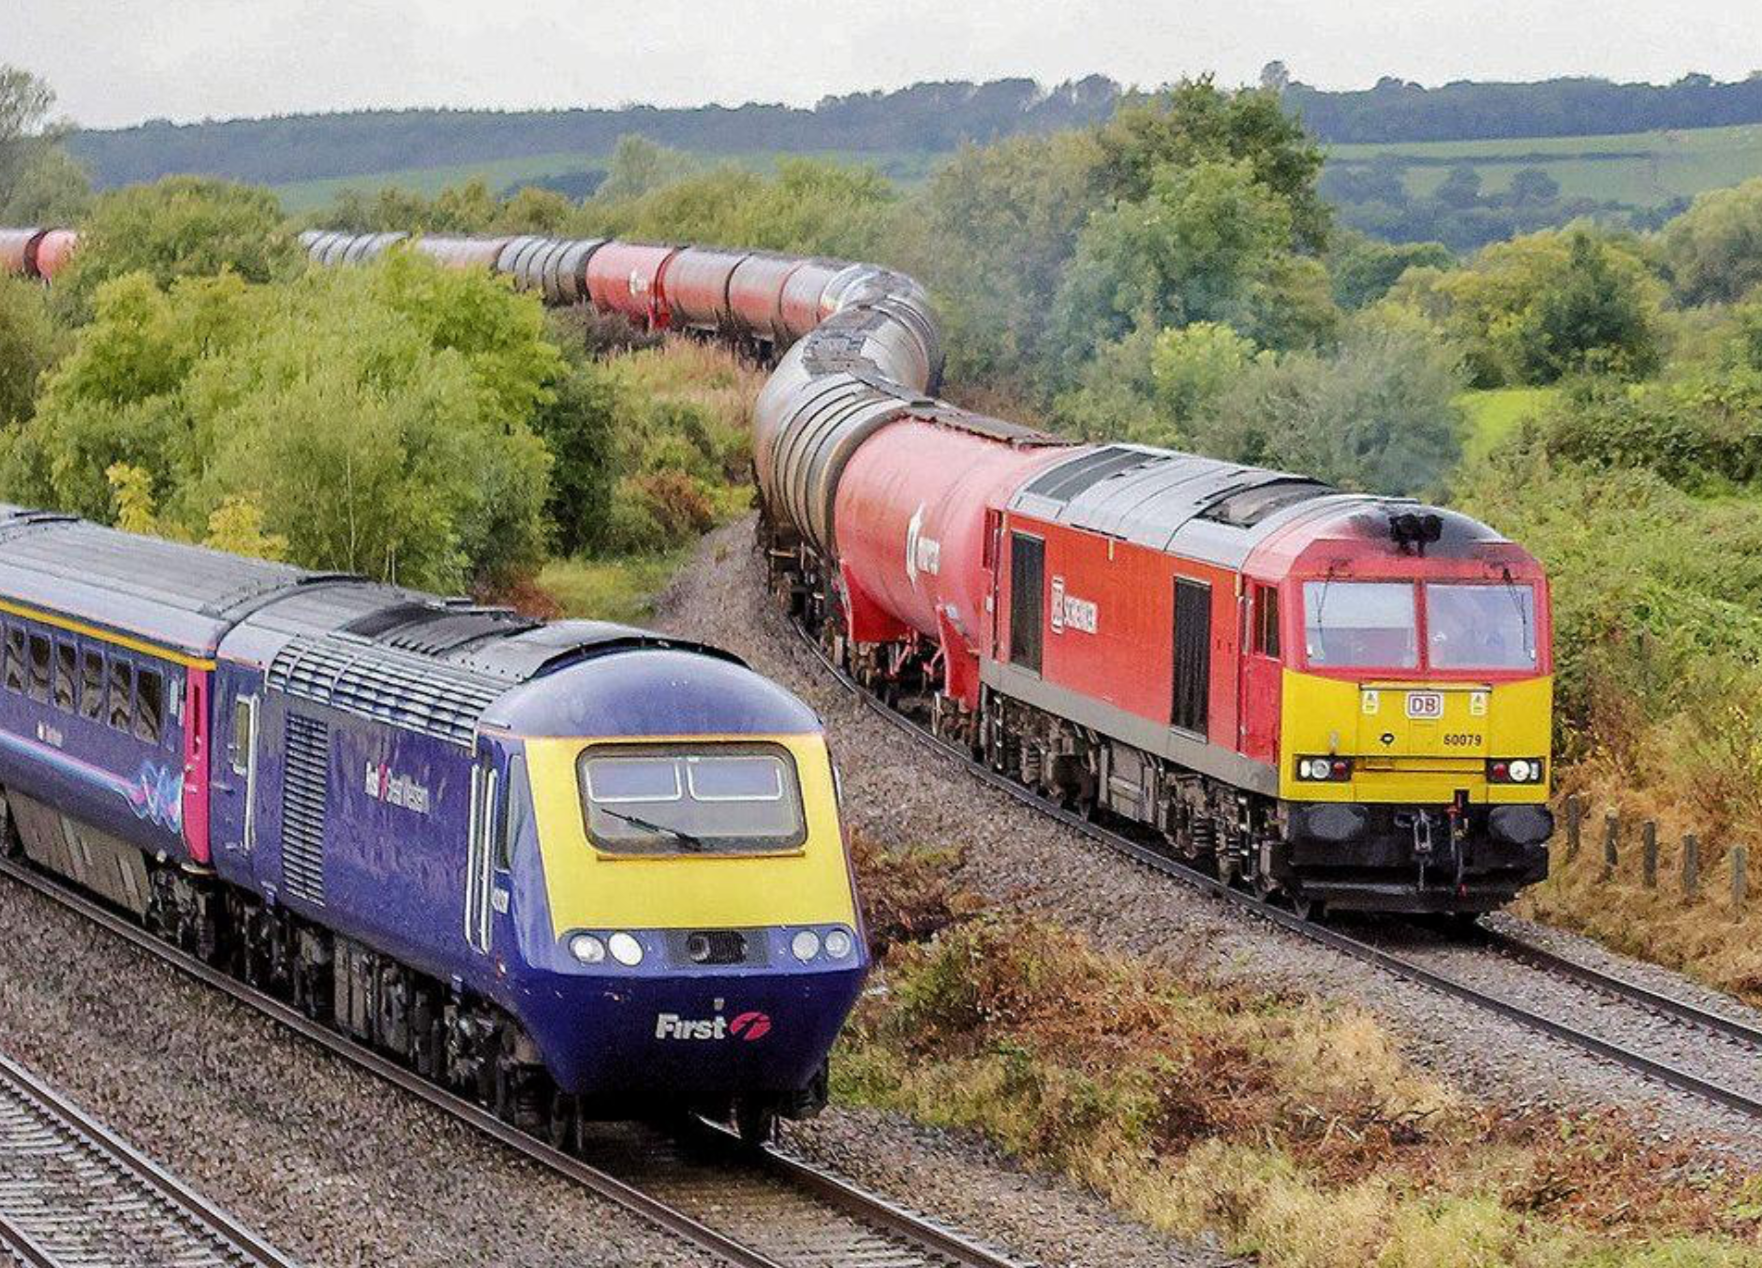 Another superb 125 image, this time captured by Carl Brunnock and used with many thanks.    60079 leading the Robeston - Westerleigh tank service and an HST on 09.55 Cardiff Central - London Paddington at Bishton [Gwent] on the 26th. September 2012. Wasn't this the most attractive livery for the HST sets?